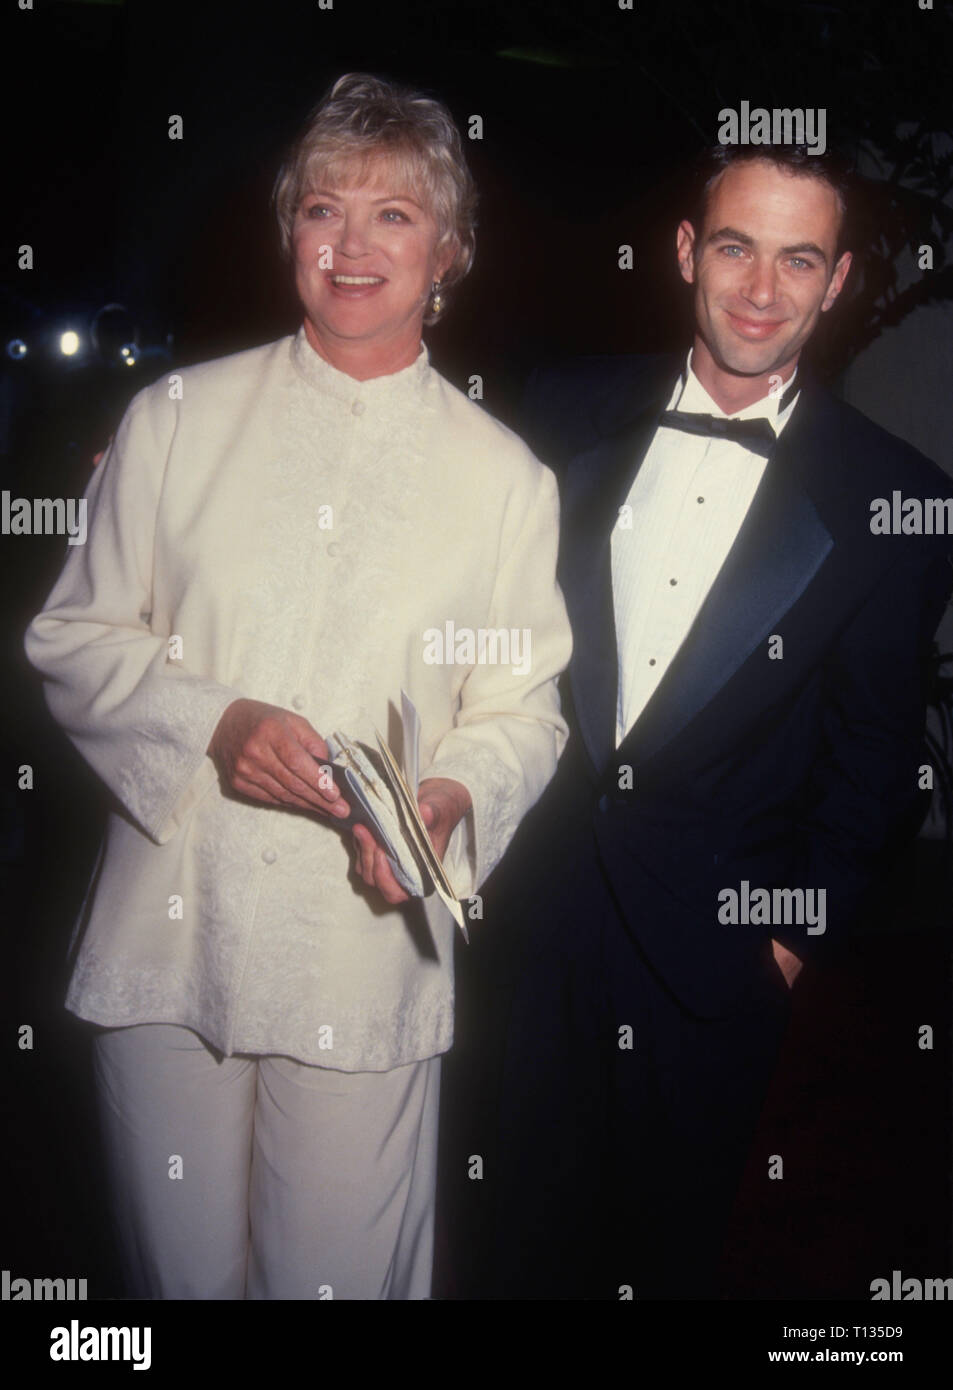 BEVERLY HILLS, CA - MARCH 3: Actress Louise Fletcher and son Andrew Wilson Bick attend the 22nd Annual American Film Institute (AFI) Lifetime Achievement Award Salute to Jack Nicholson on March 3, 1994 at the Beverly Hilton Hotel in Beverly Hills, California. Photo by Barry King/Alamy Stock Photo - Stock Image